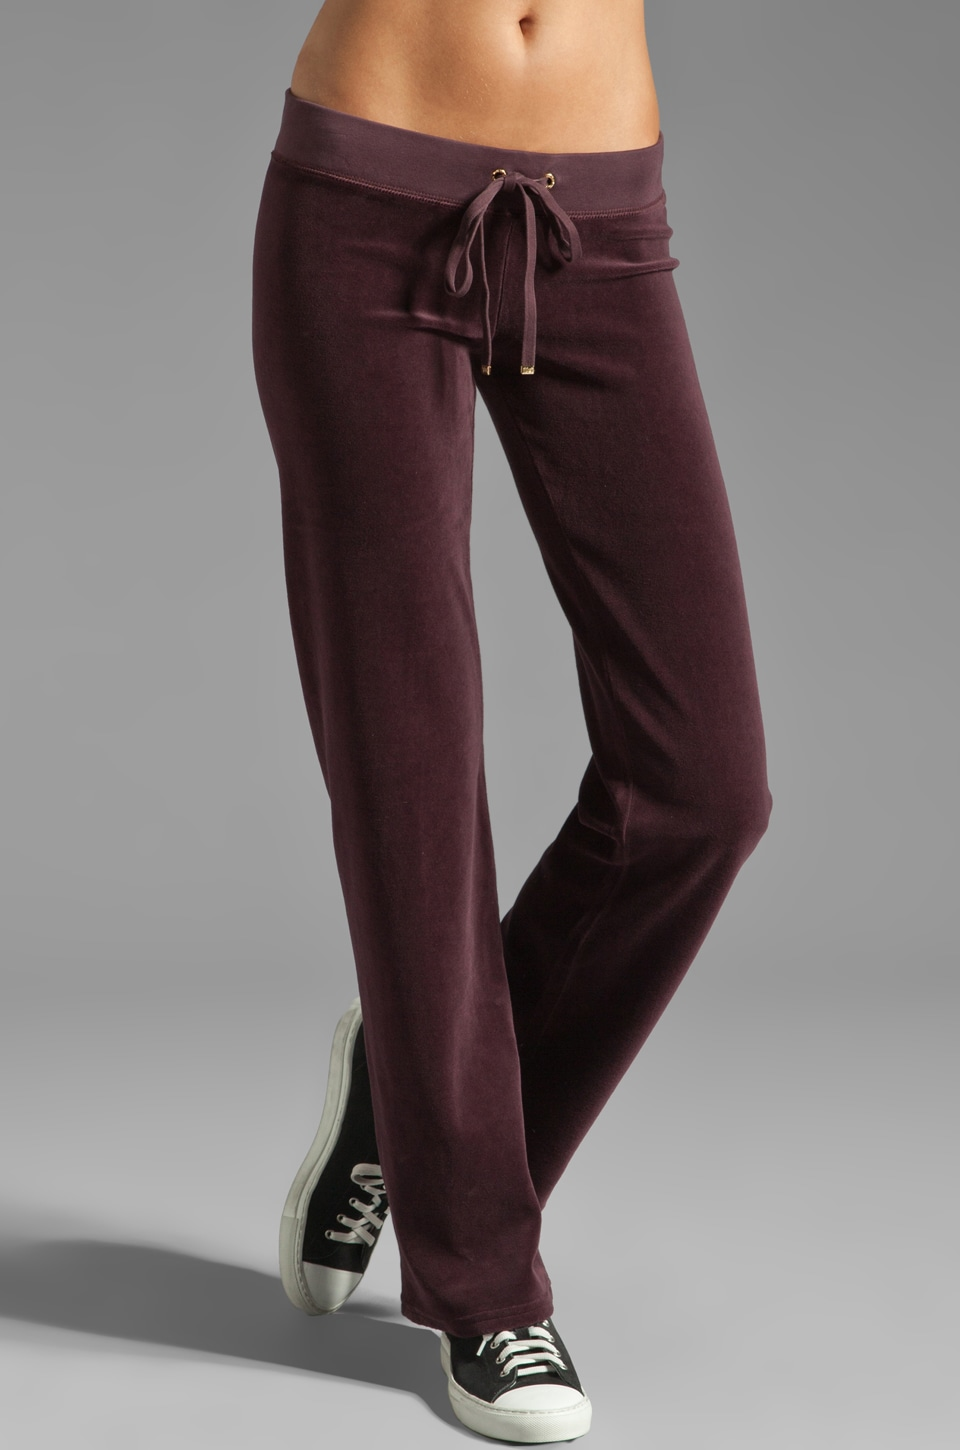 Juicy Couture Velour Original Leg Pant in Dark Cabernet